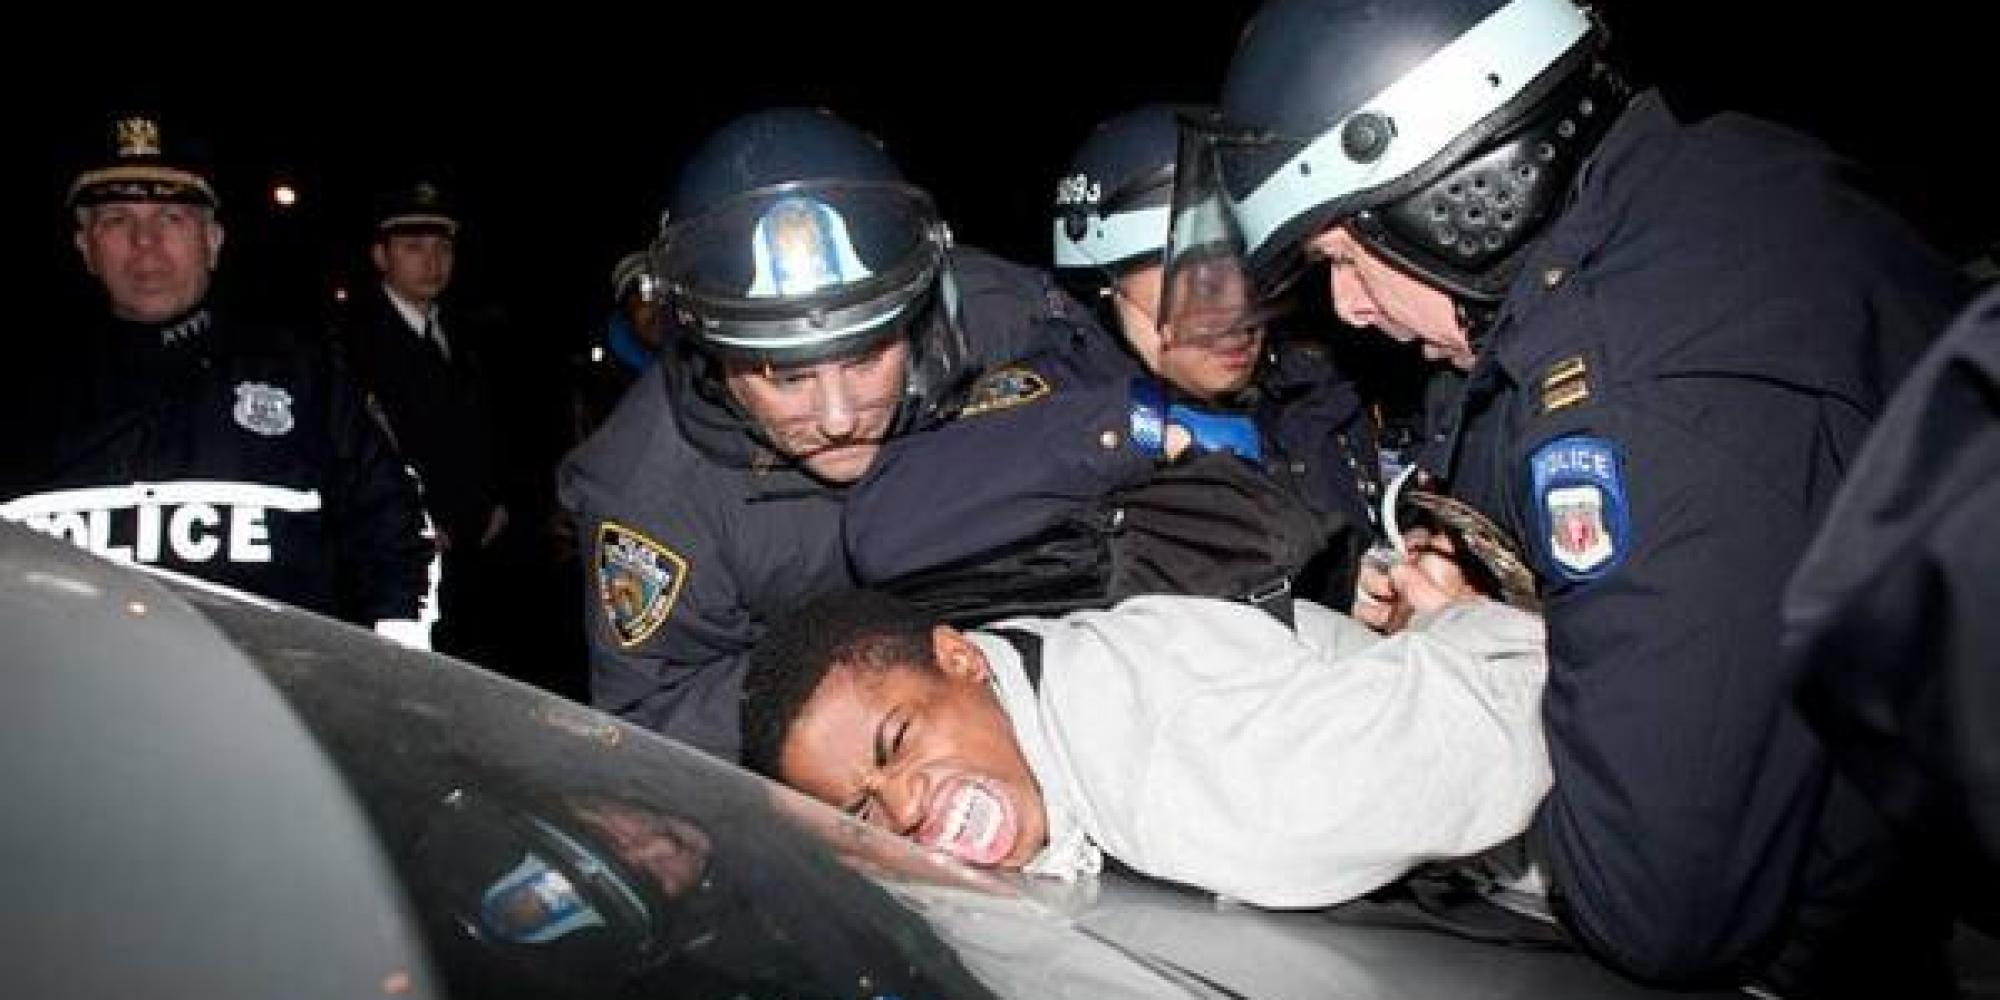 Police Abuse and Police Reform in the United States